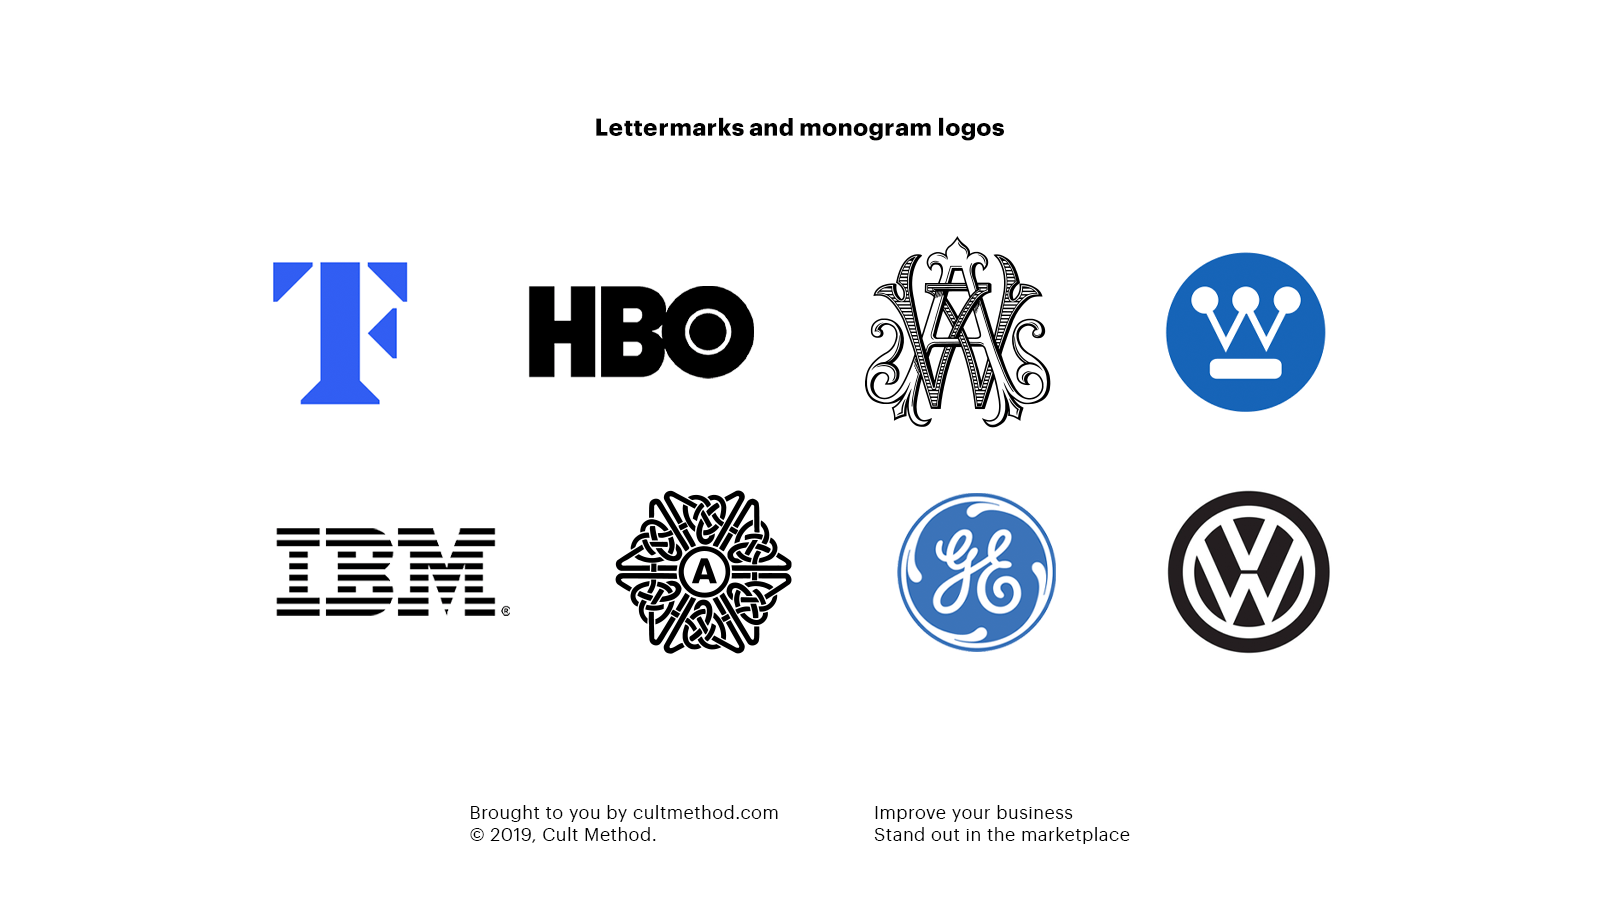 Different lettermarks and monogram logos